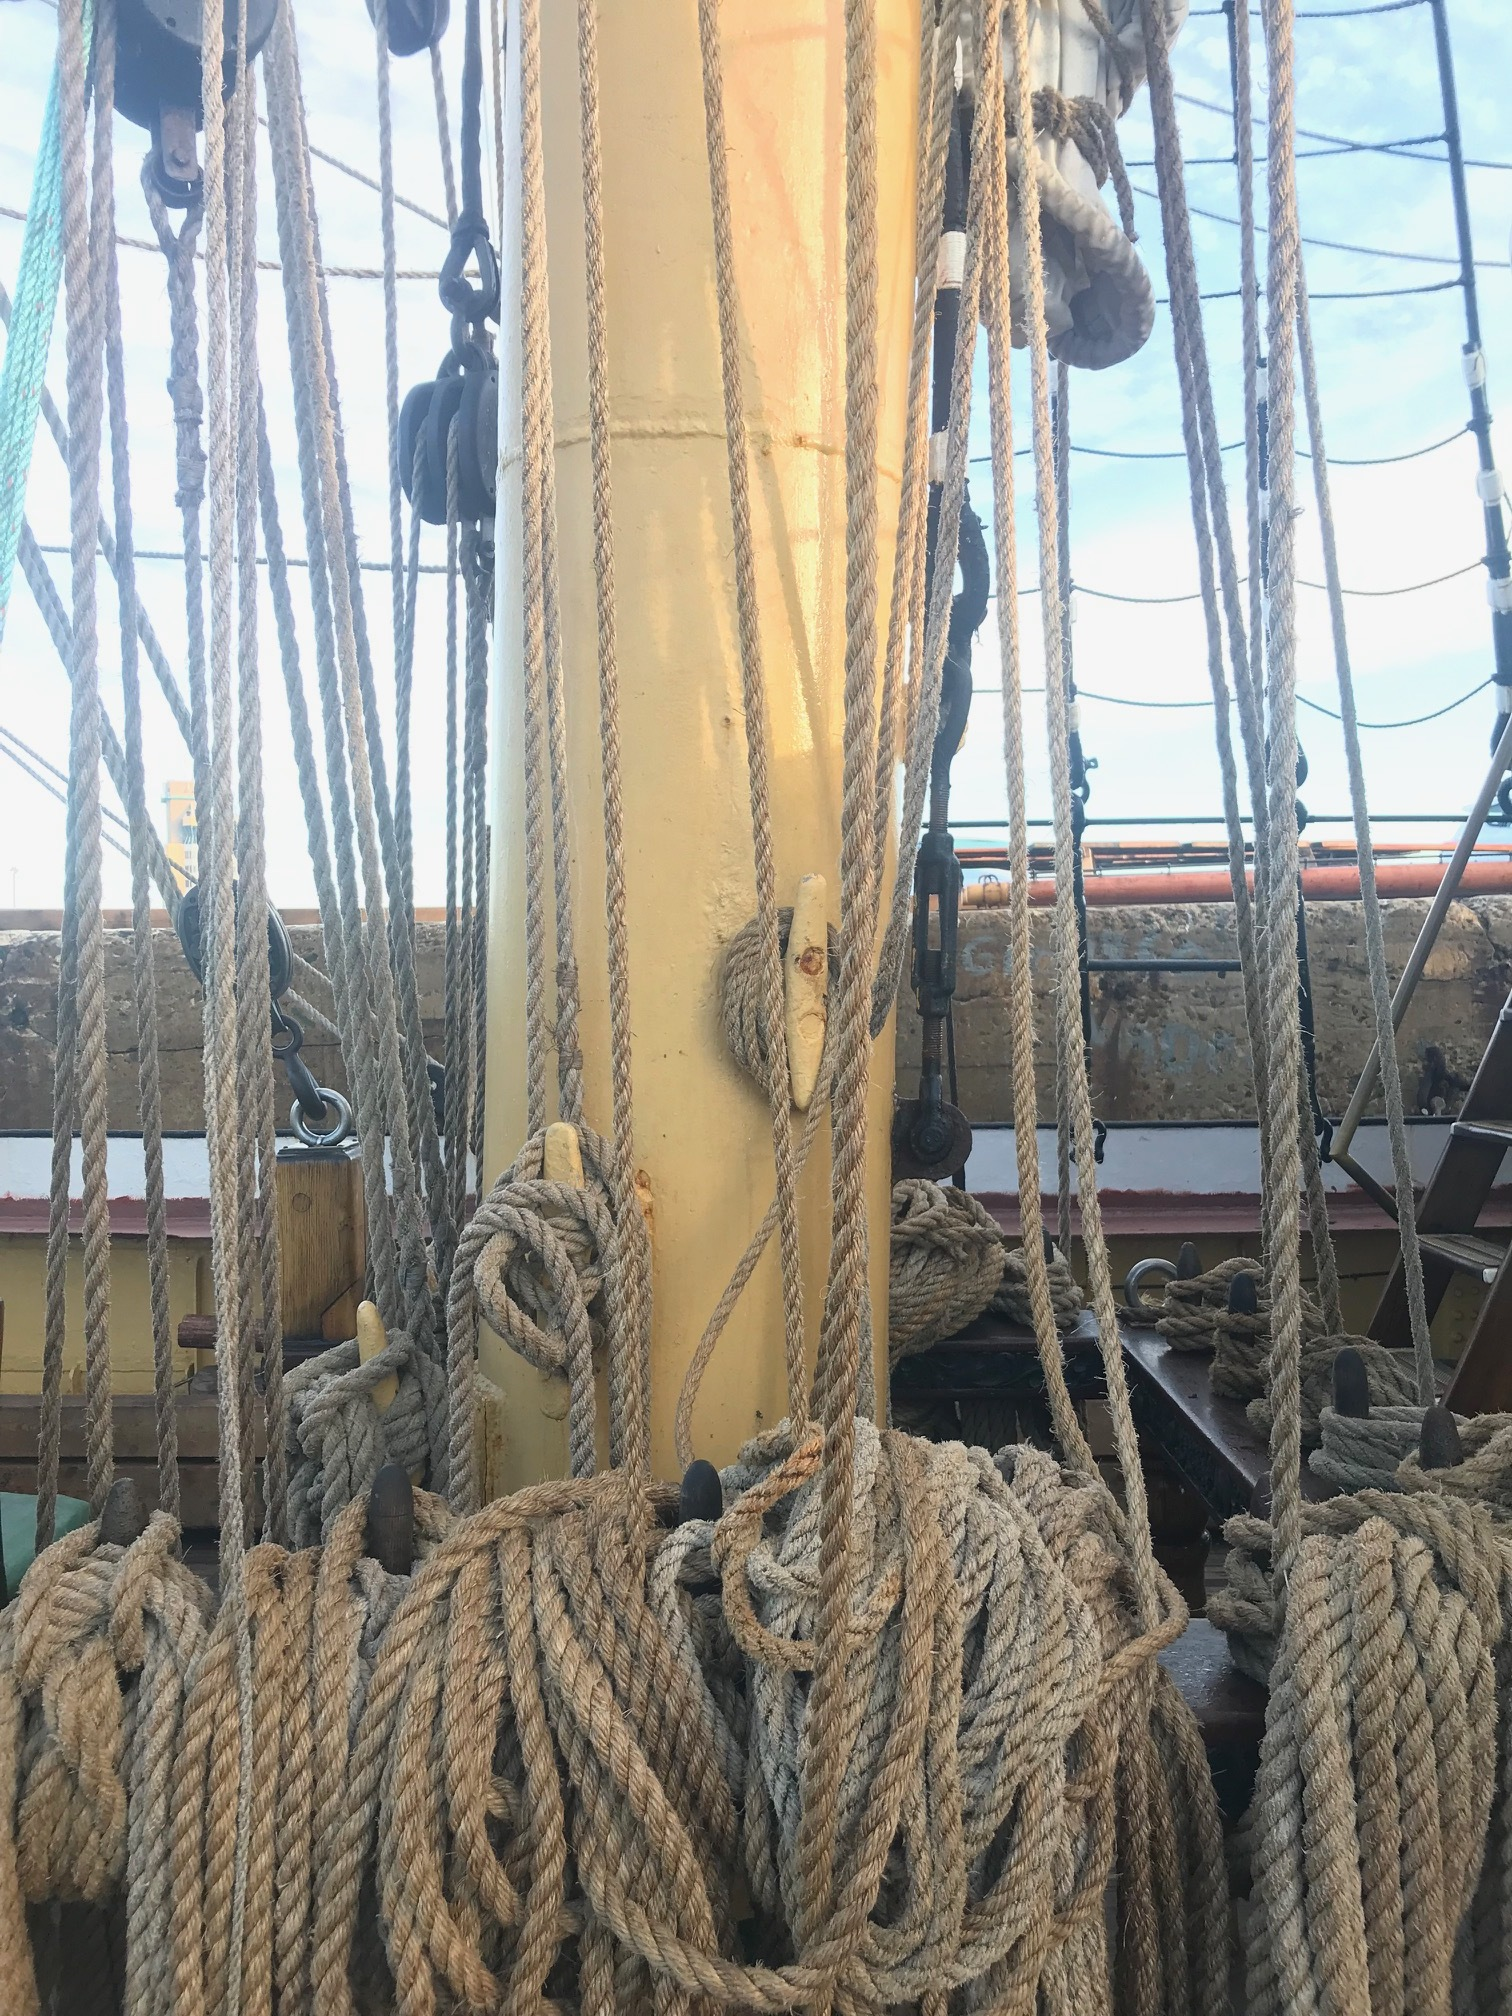 Lots of ropes and lines on a tall ship